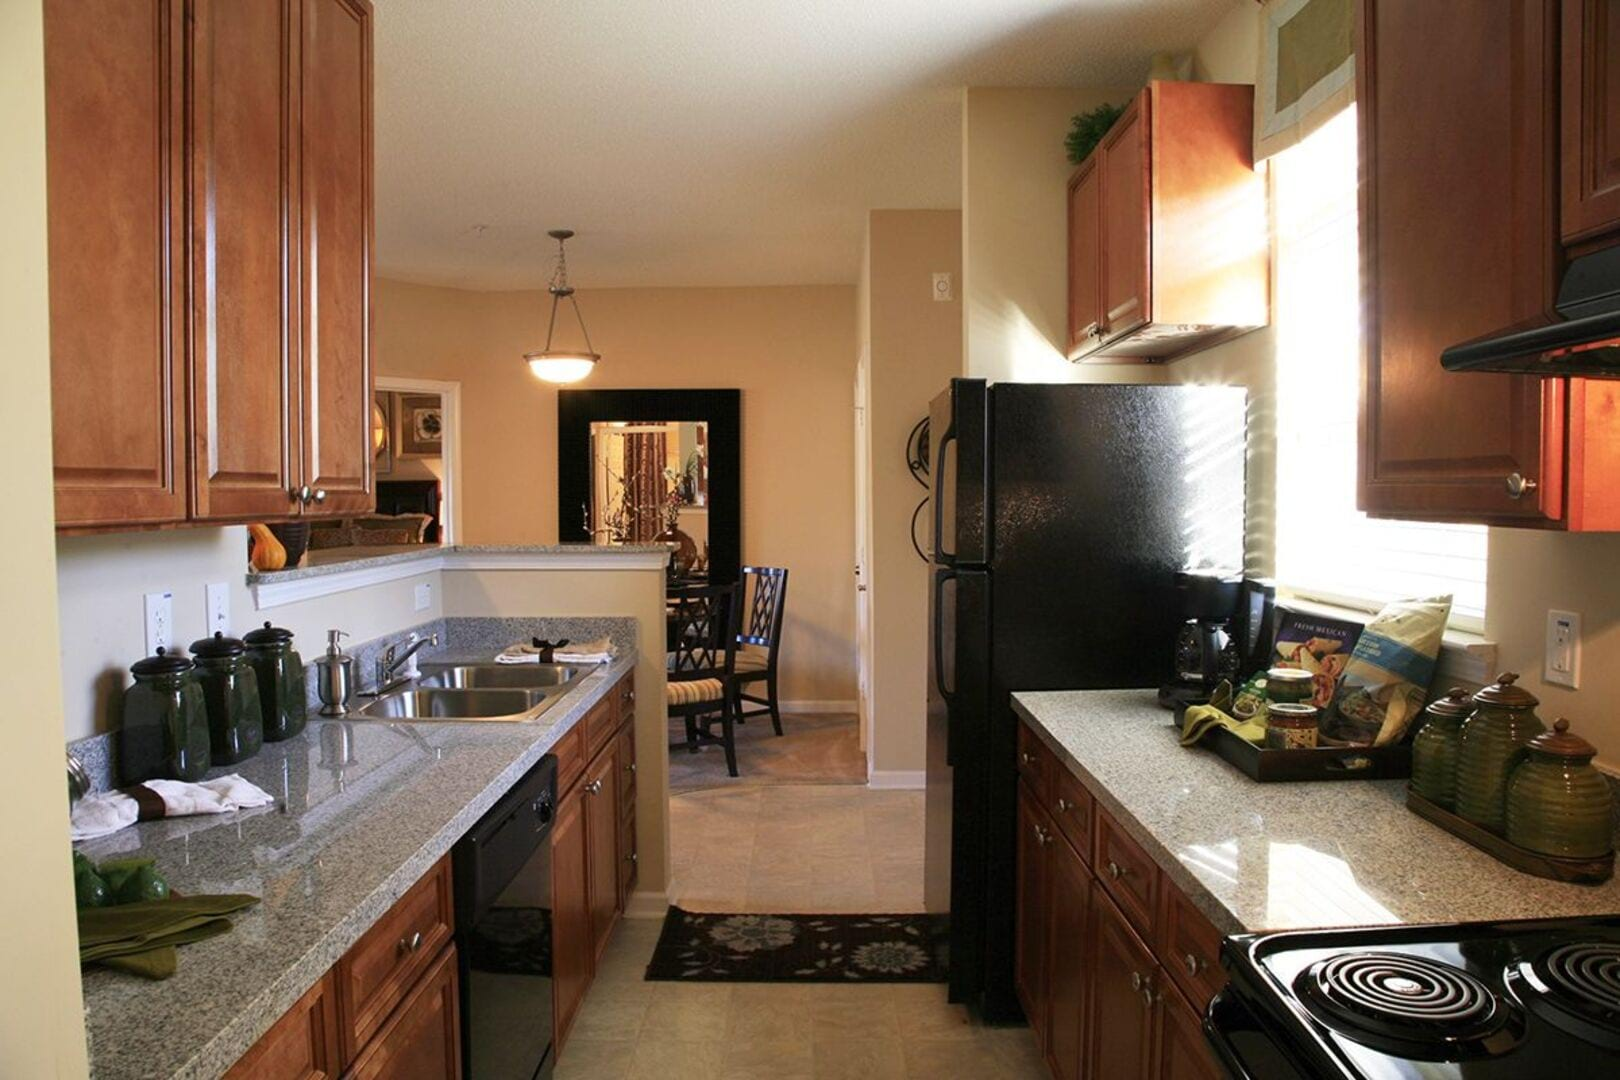 One Bedroom Apartments Atlanta Post Parkside Atl Post Parkside Atl Is An Apartment Complex In